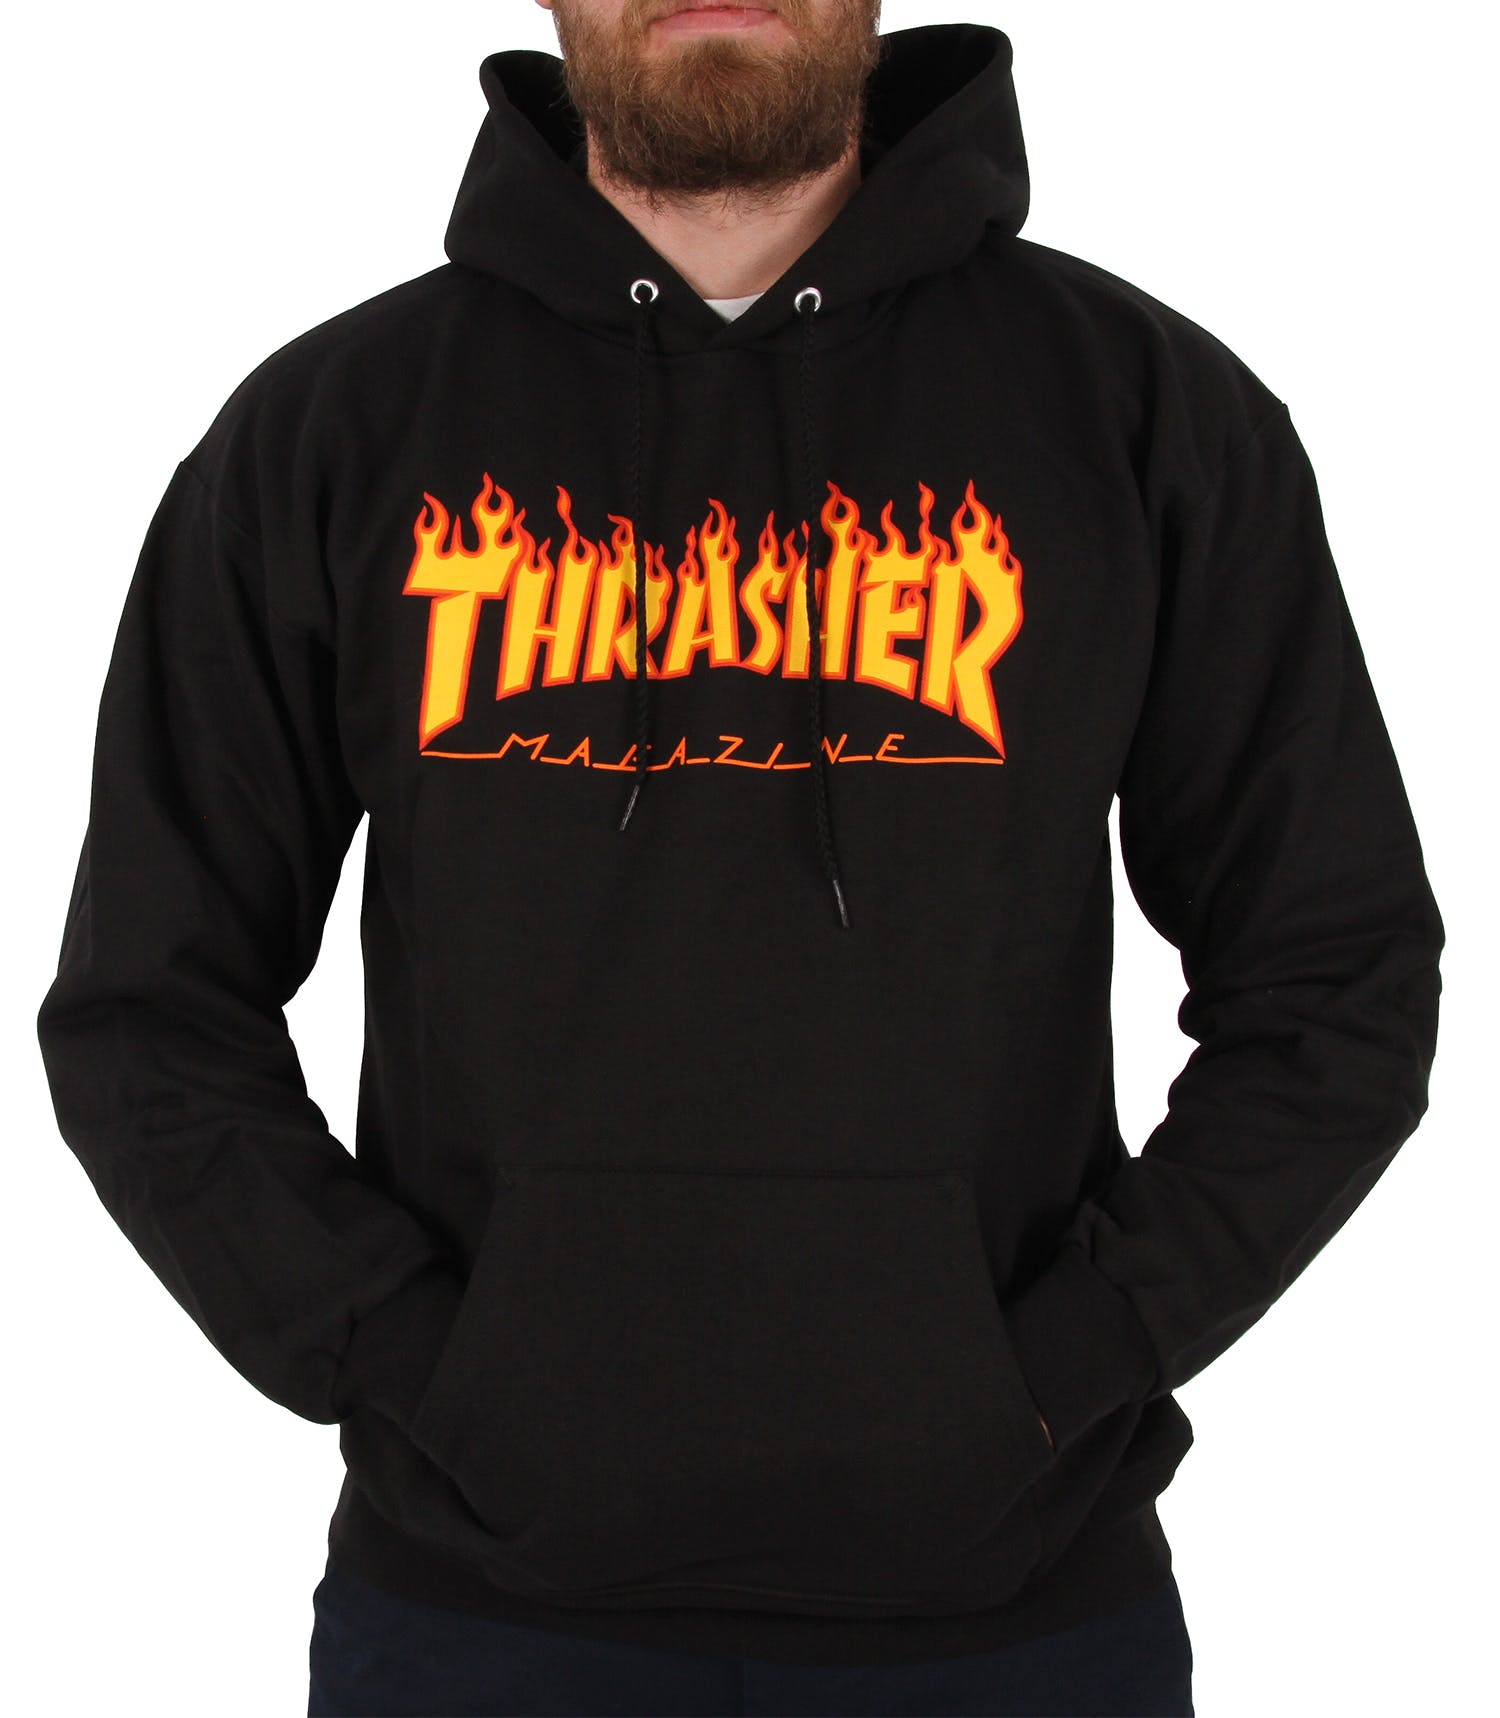 Details about Thrasher Flame Logo Hoodie.